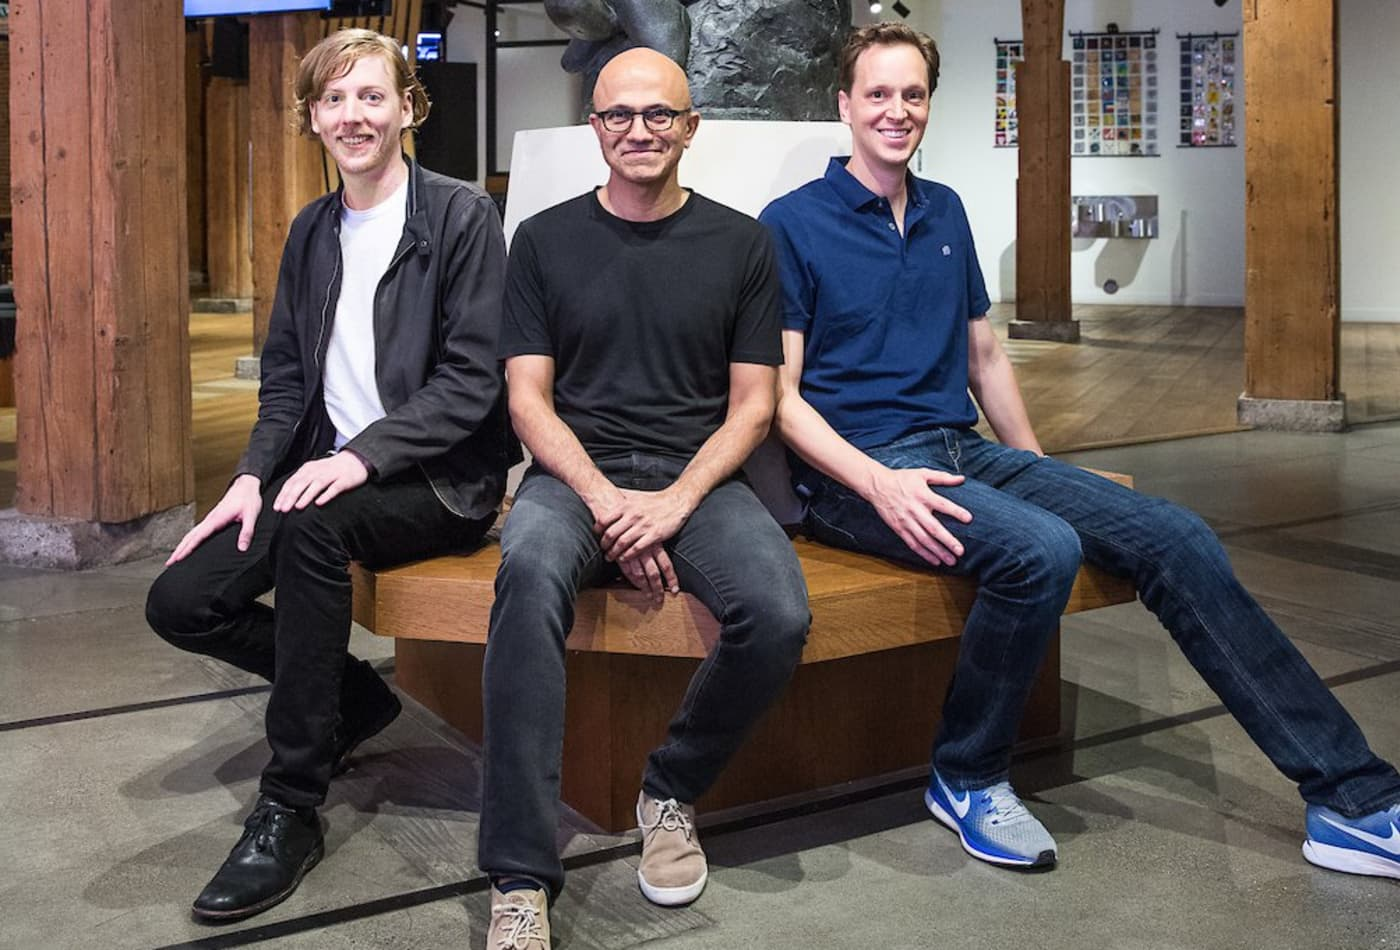 GitHub is forcing Microsoft to deal with thorny controversies two years after acquisition